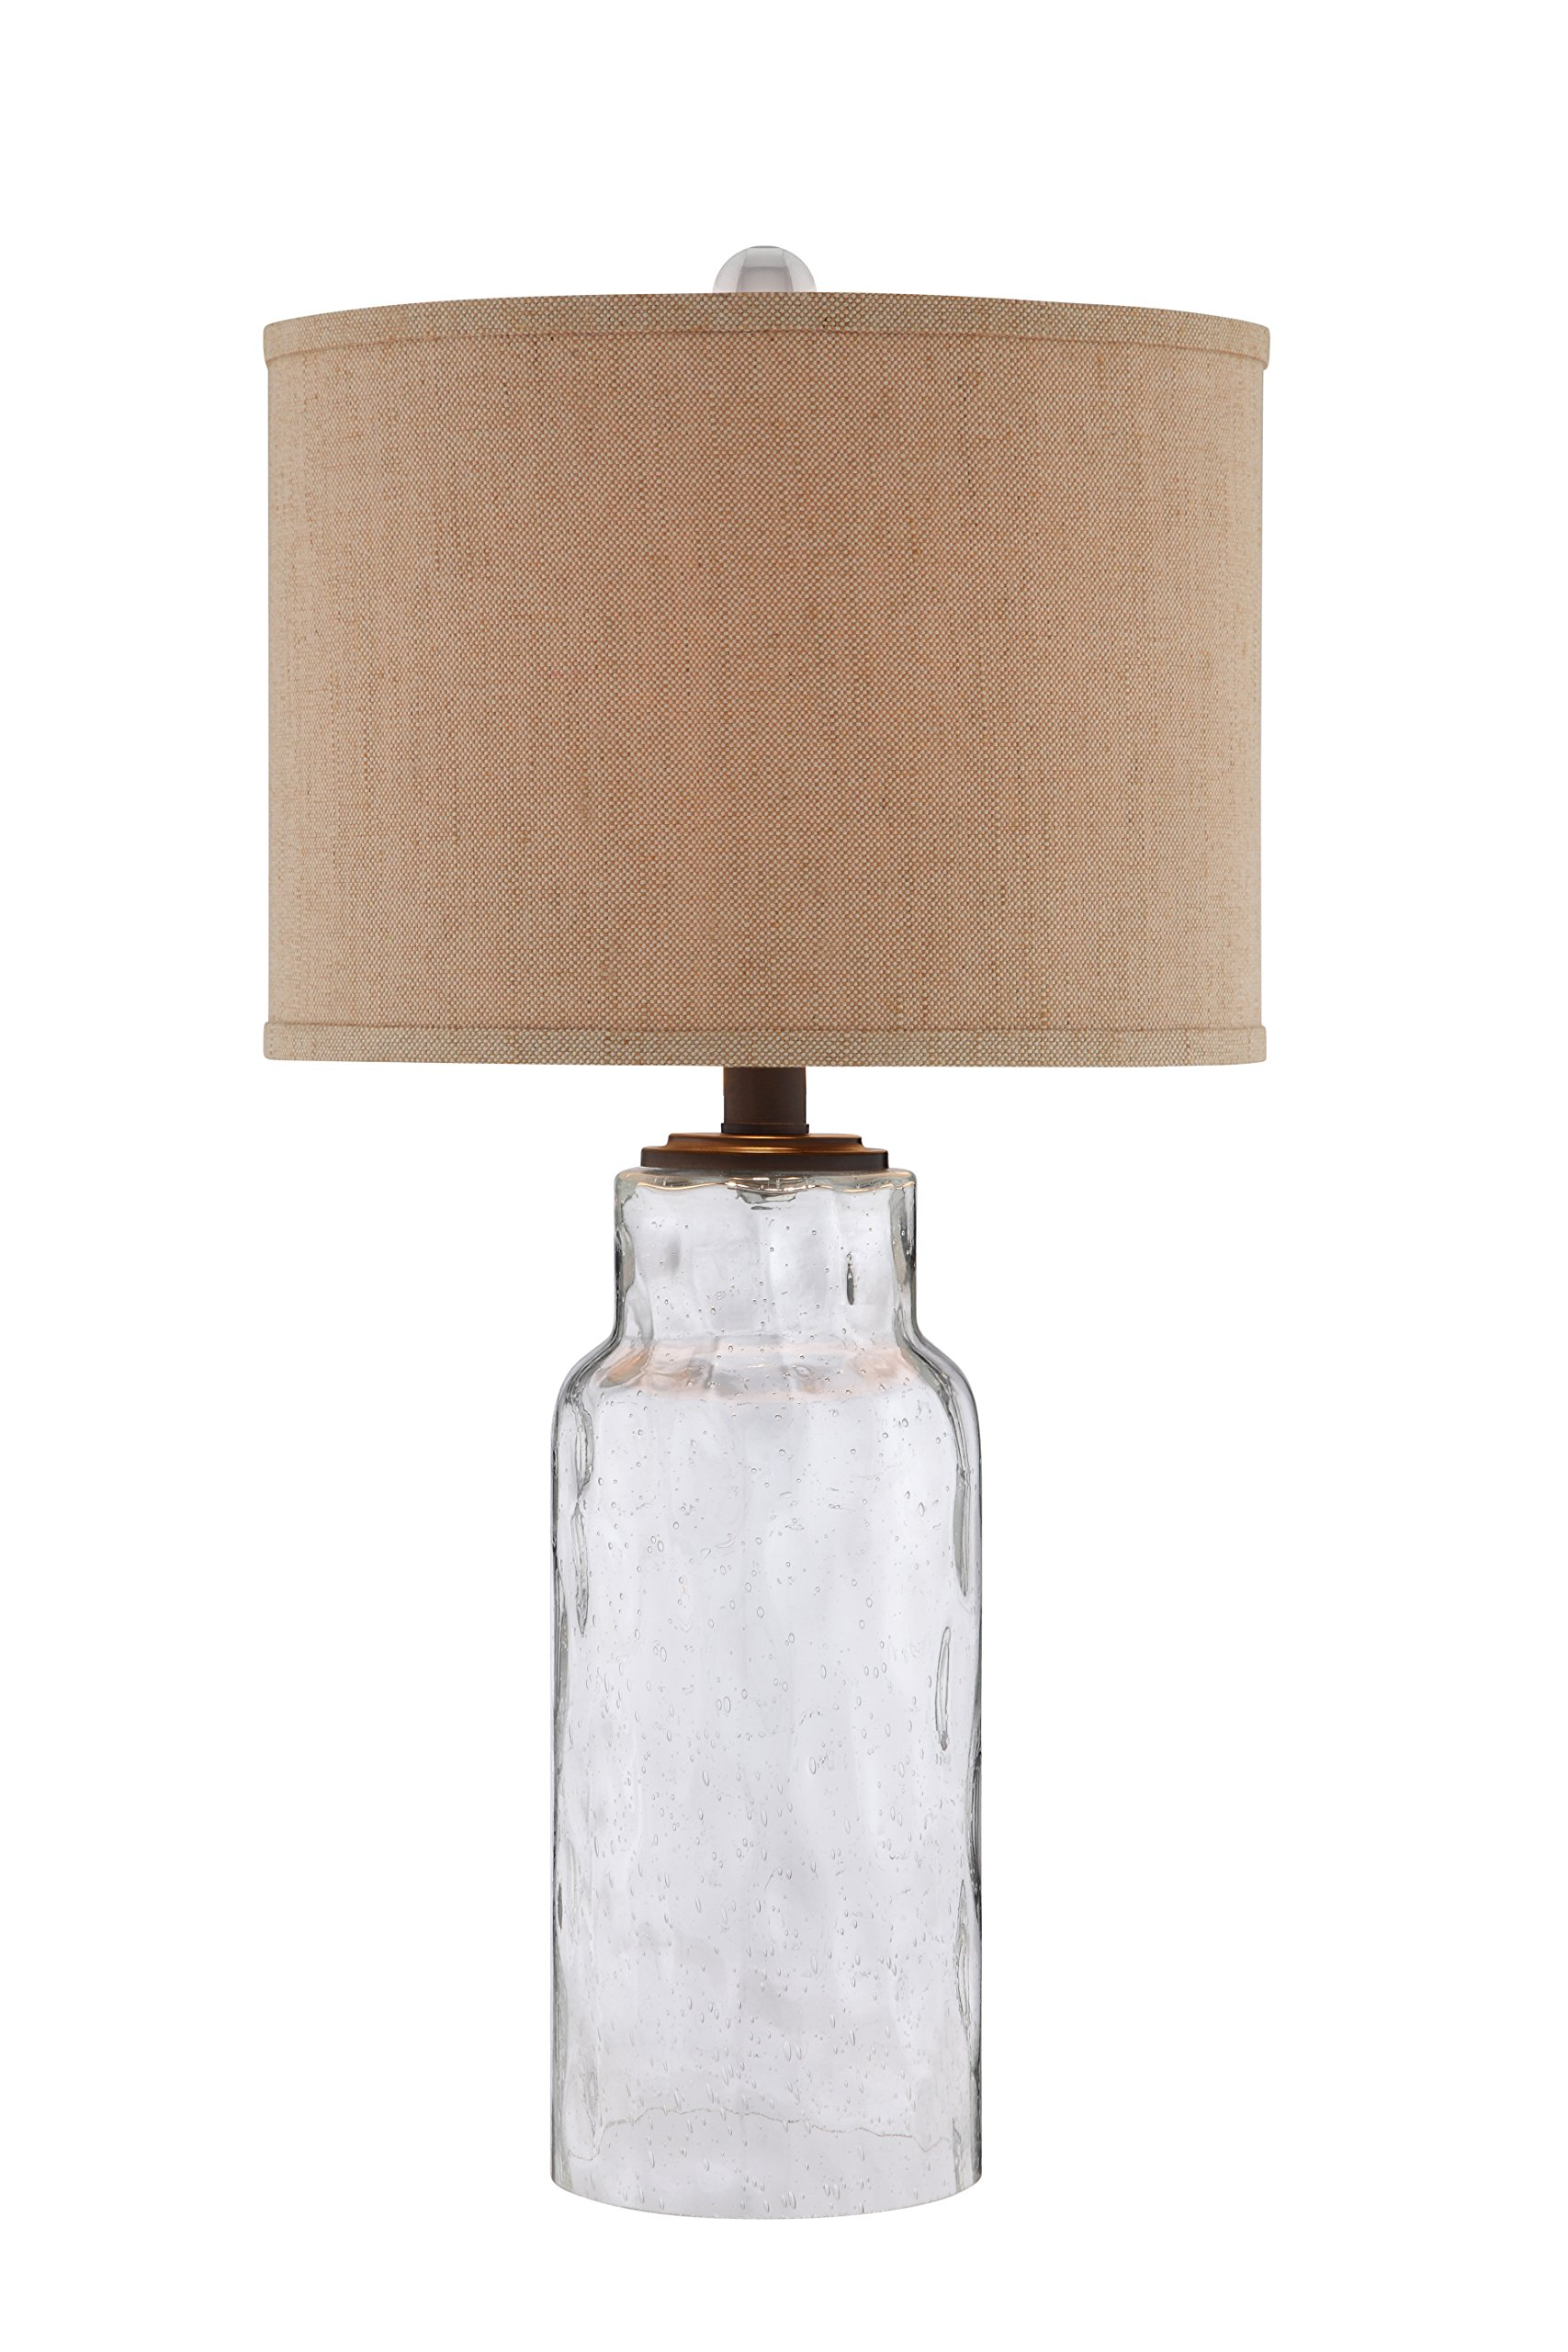 Illuminada 19144-001 Transitional 3-Way Dimpled Glass Table Lamp with Textured Linen Drum Hardback Shade and Bulb, 29-Inch, Clear by Catalina Lighting